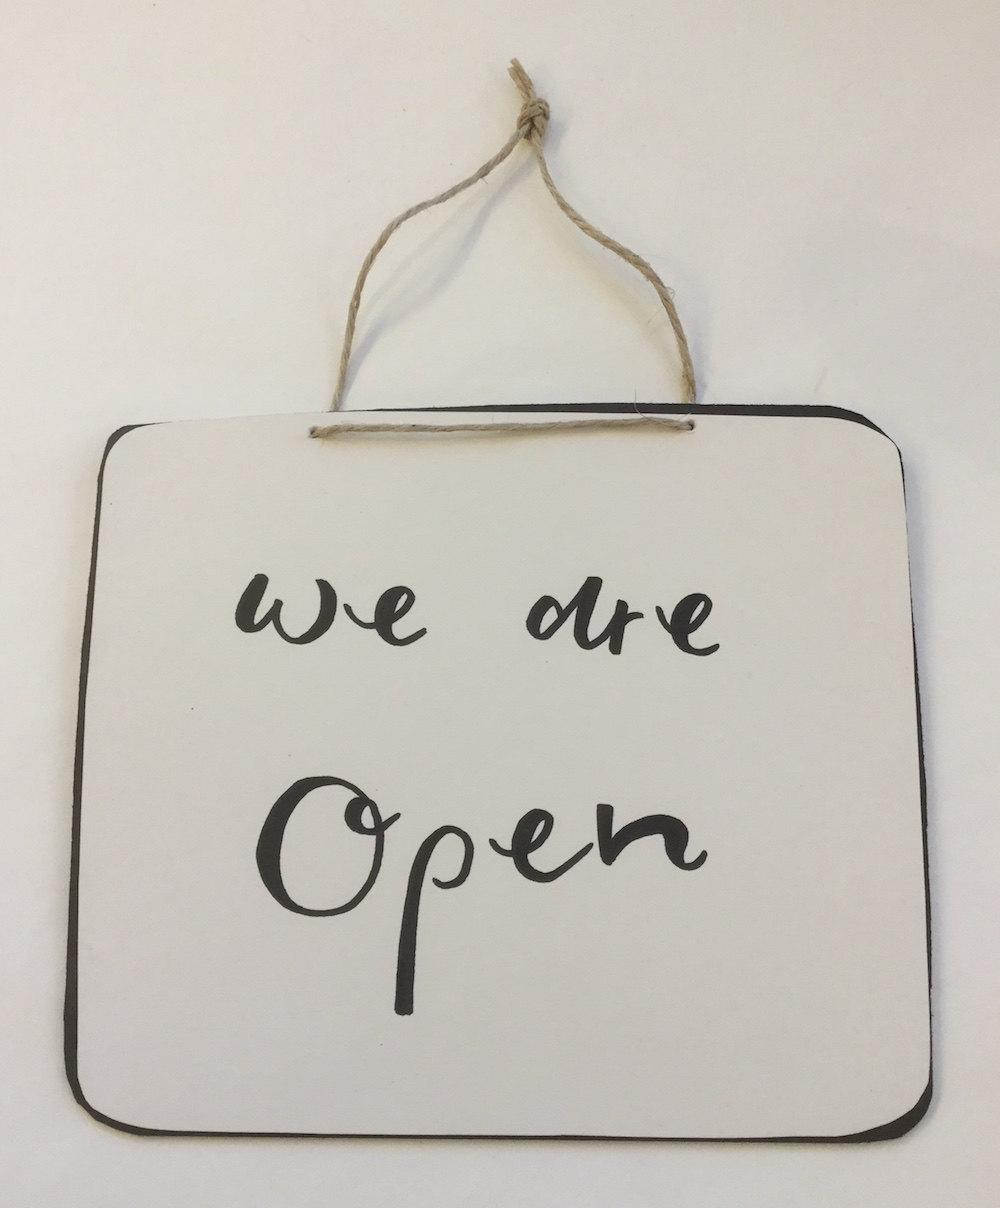 WE ARE OPEN/WE ARE CLOSED